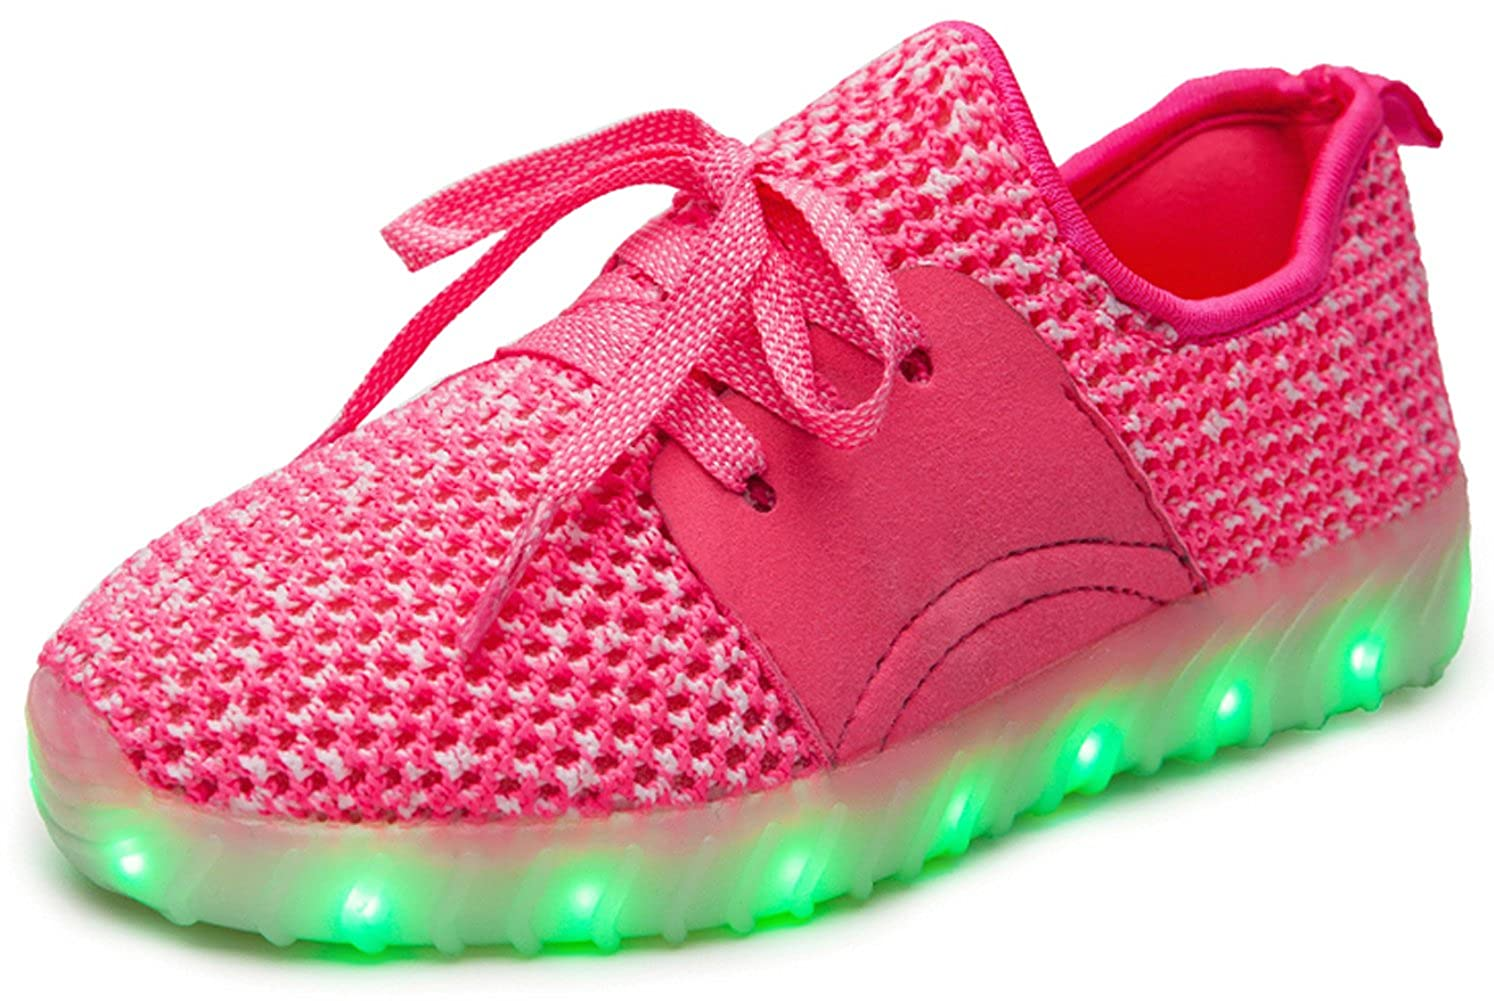 Toddler//Little Kid//Big Kid Dear-Queen Kids 7 Colors LED Light up Shoes for Boys Girls fashion-sneakers